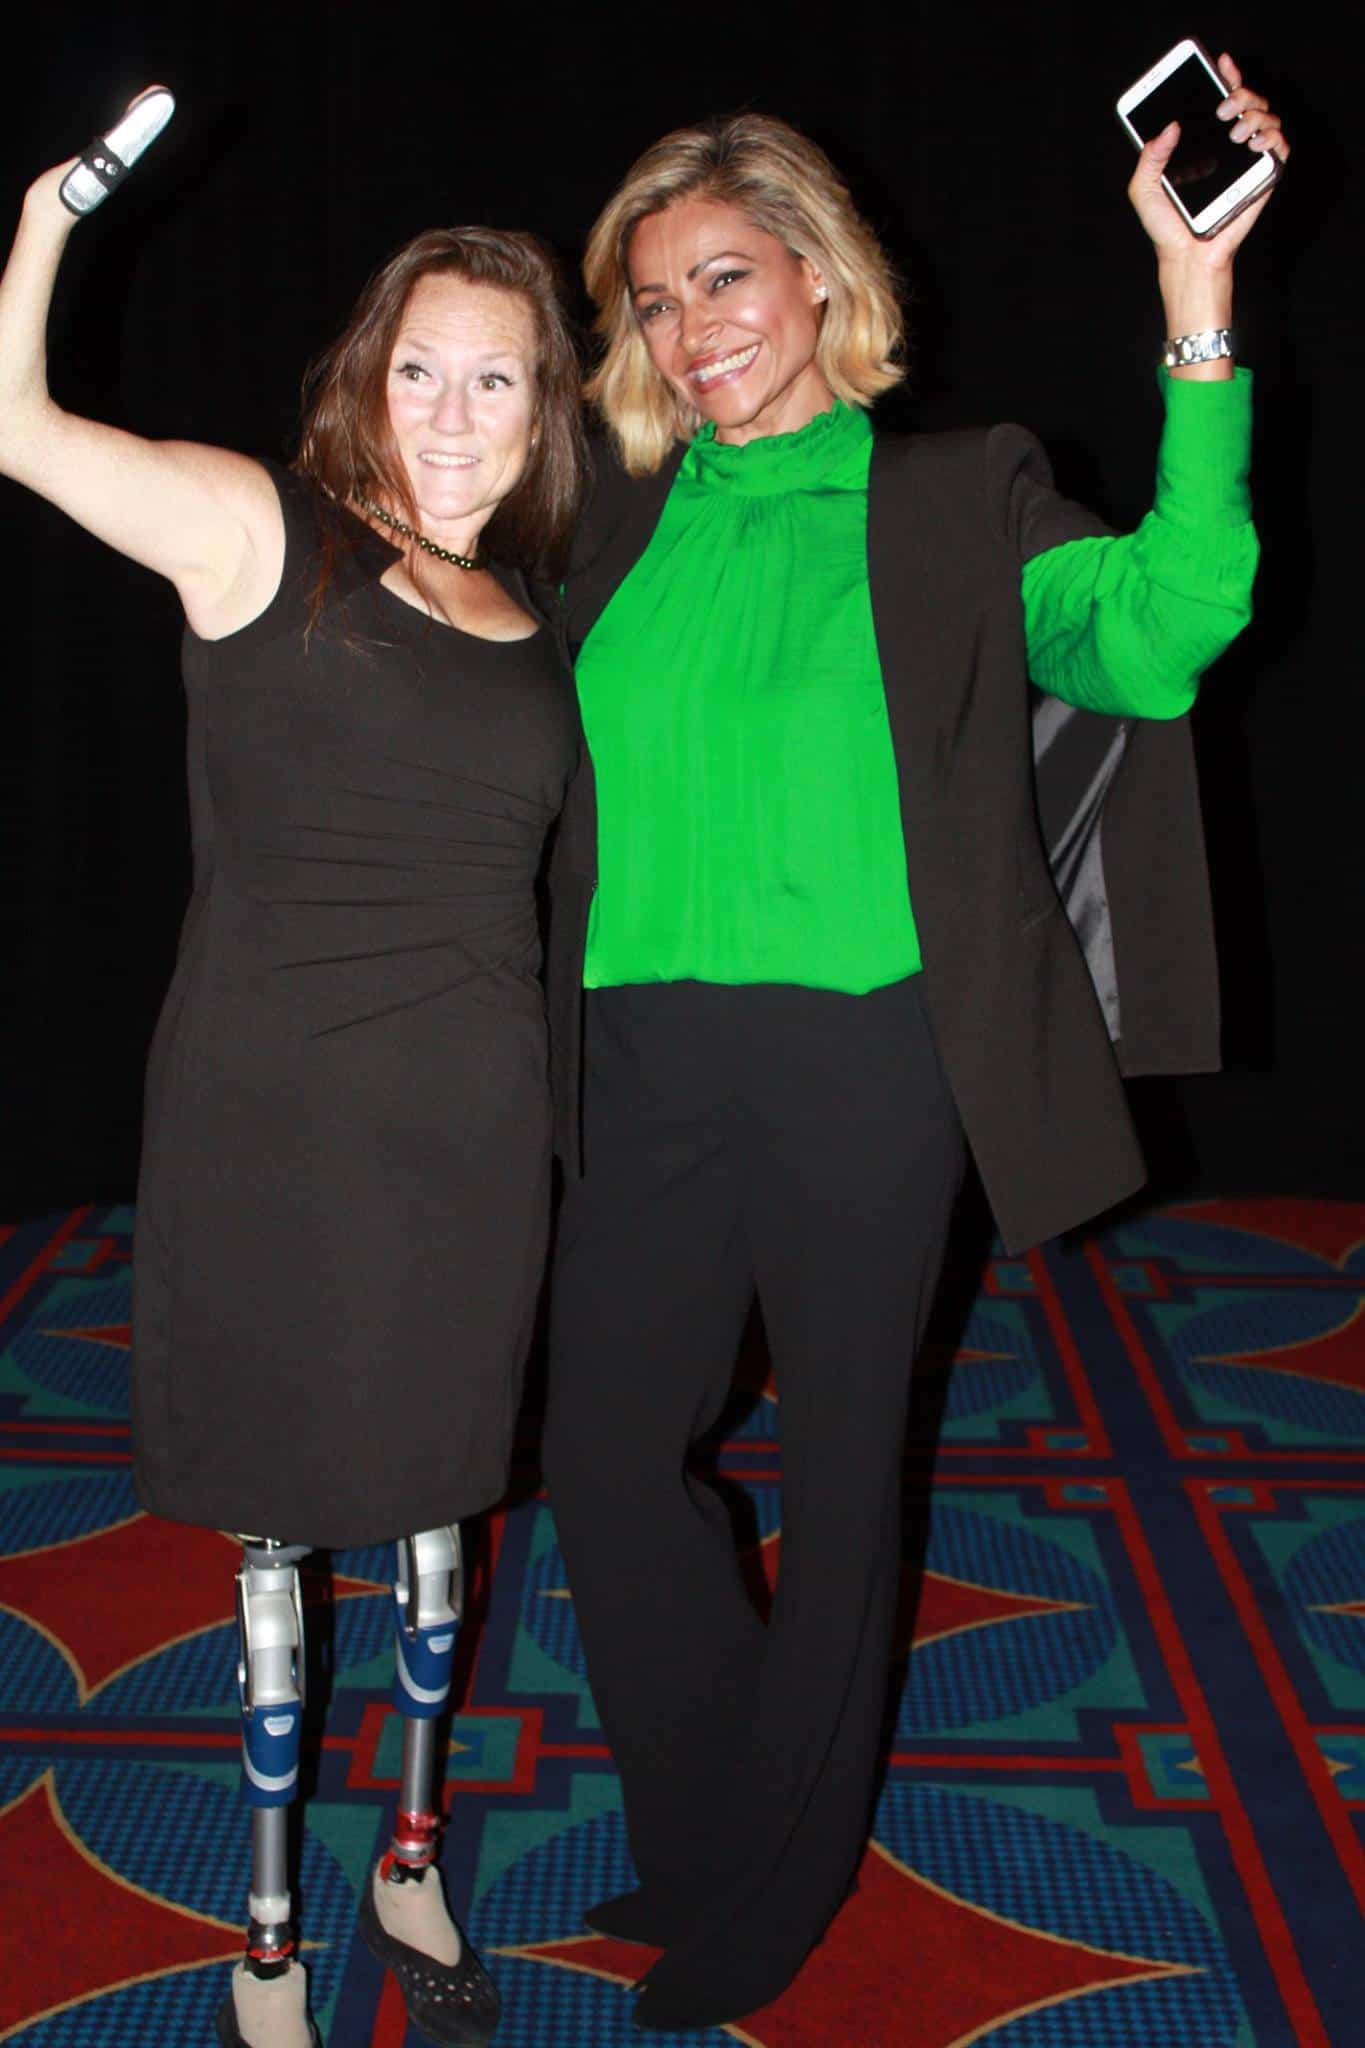 #GirlPower! Getting inspired and motivated by the Unstoppable Tracy. Tracy Schmitt is an author, hum